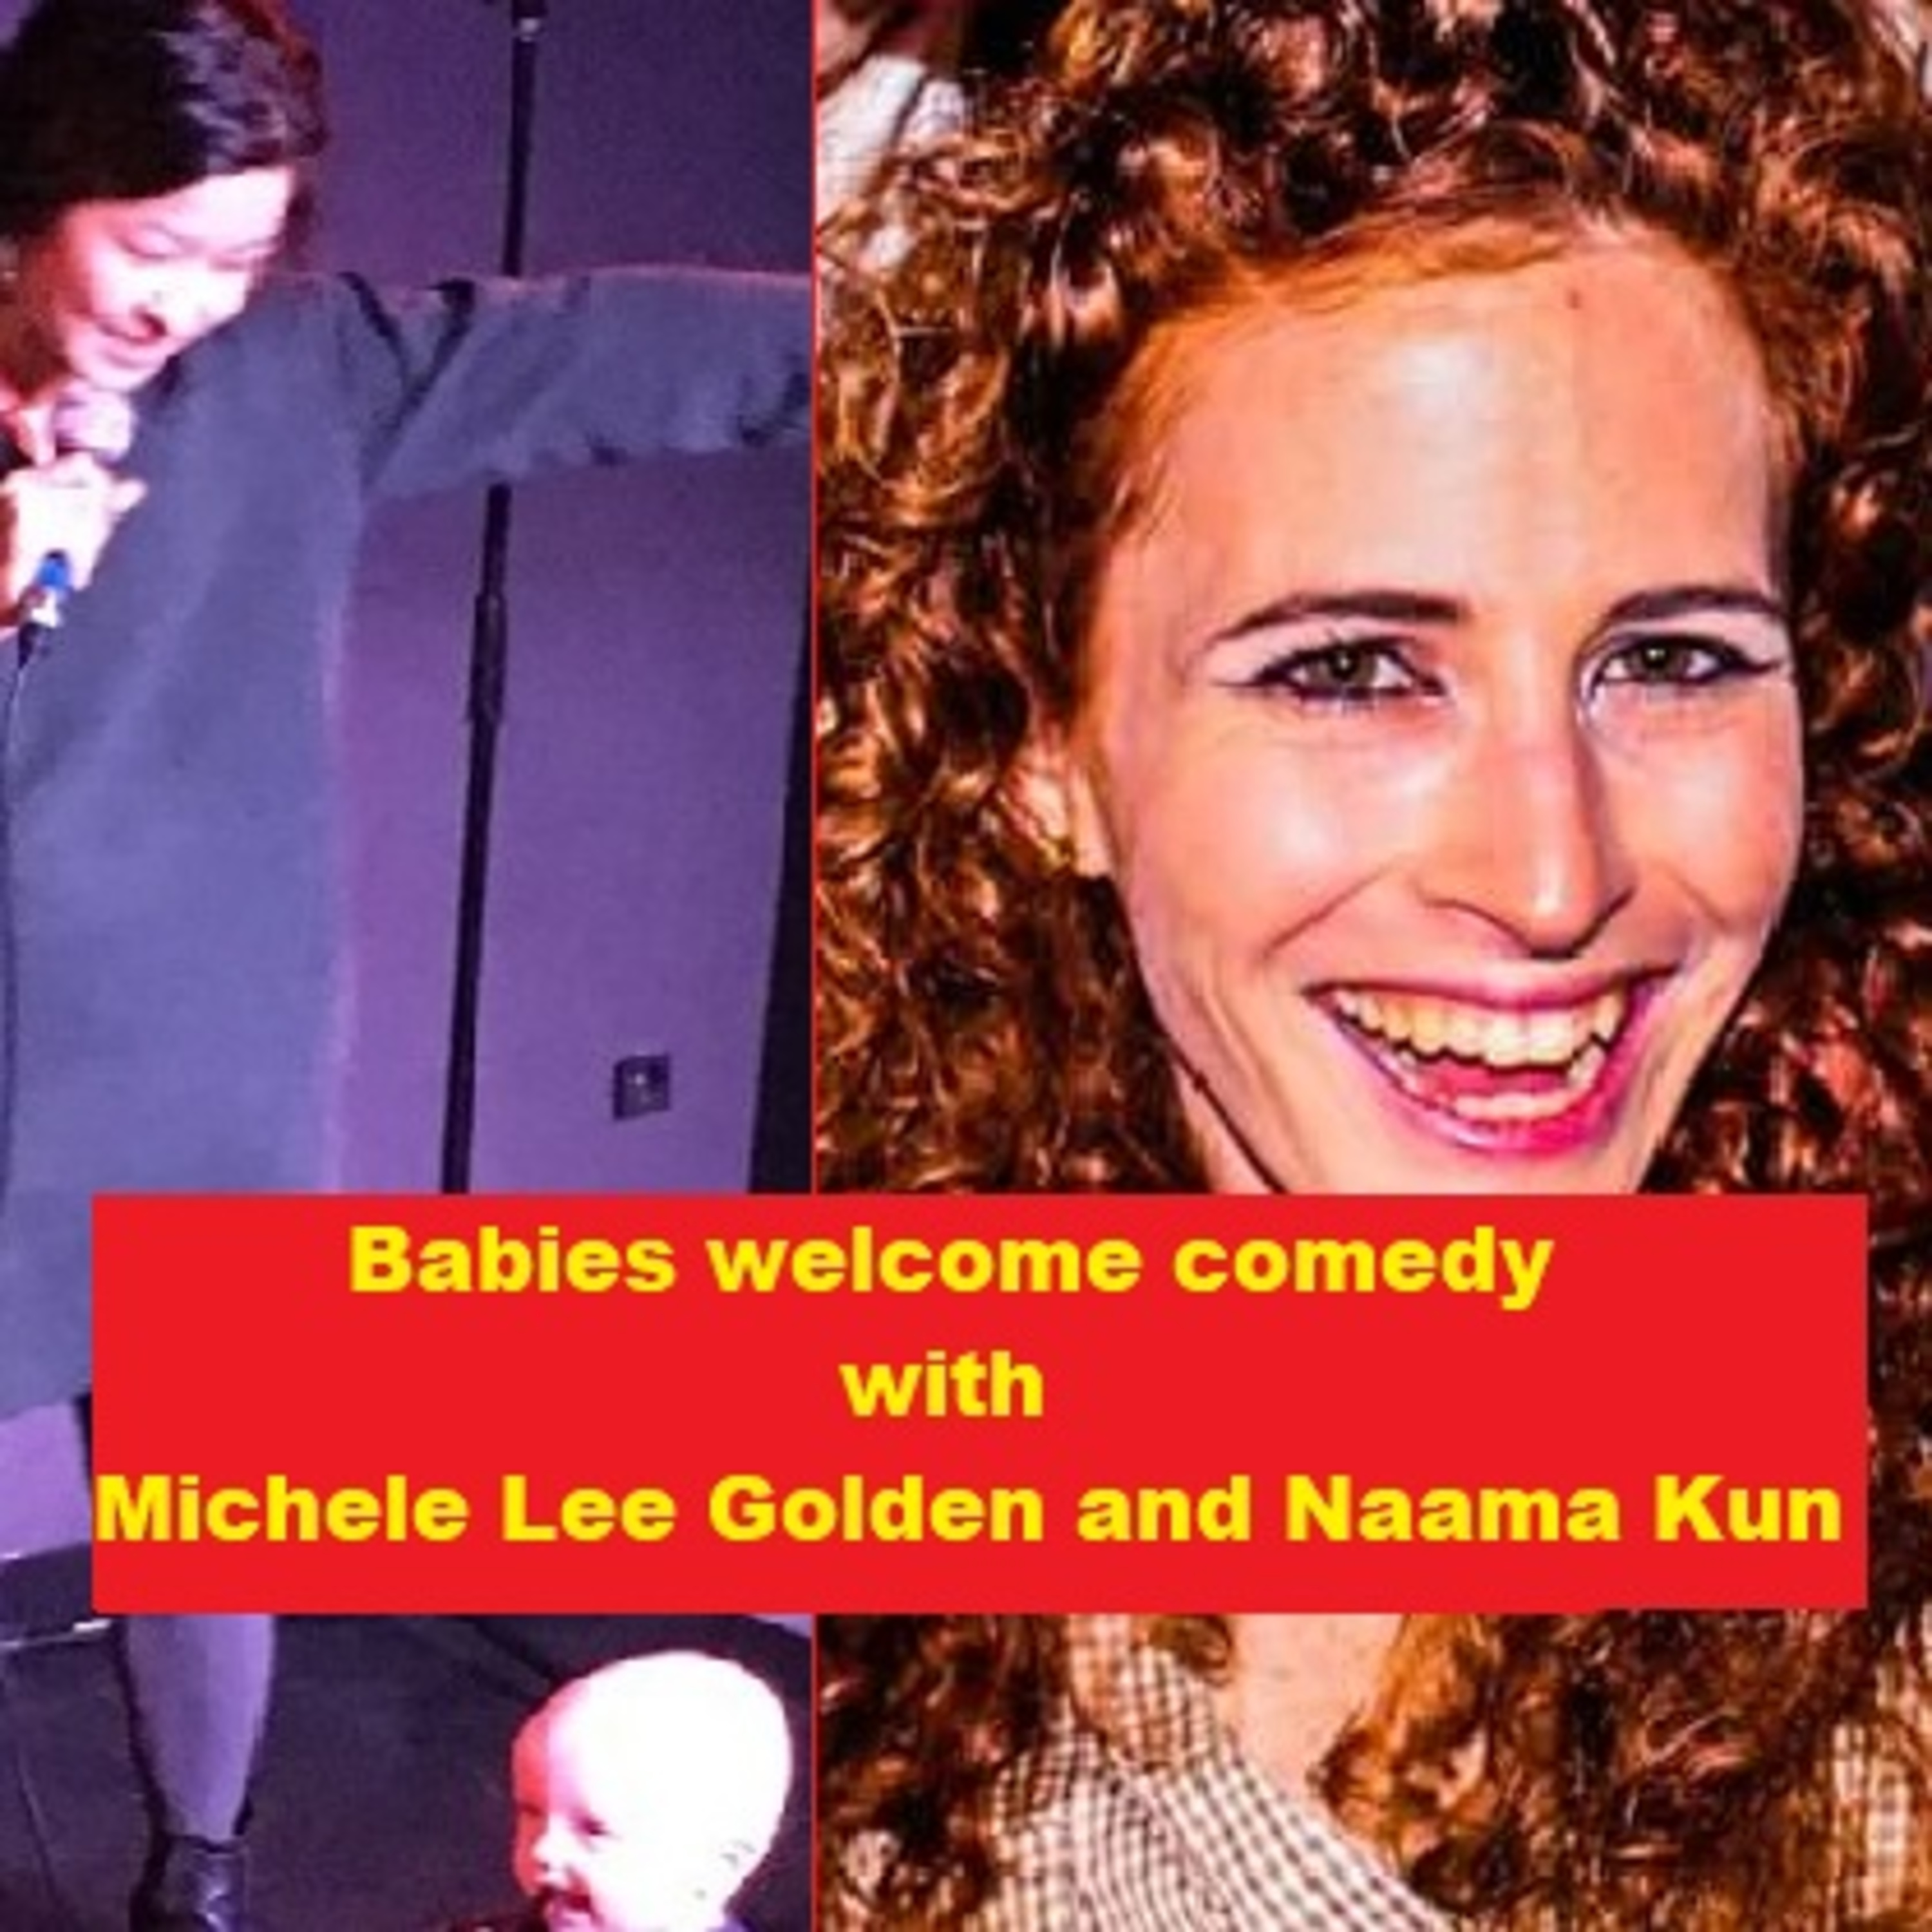 Comedy with babies.